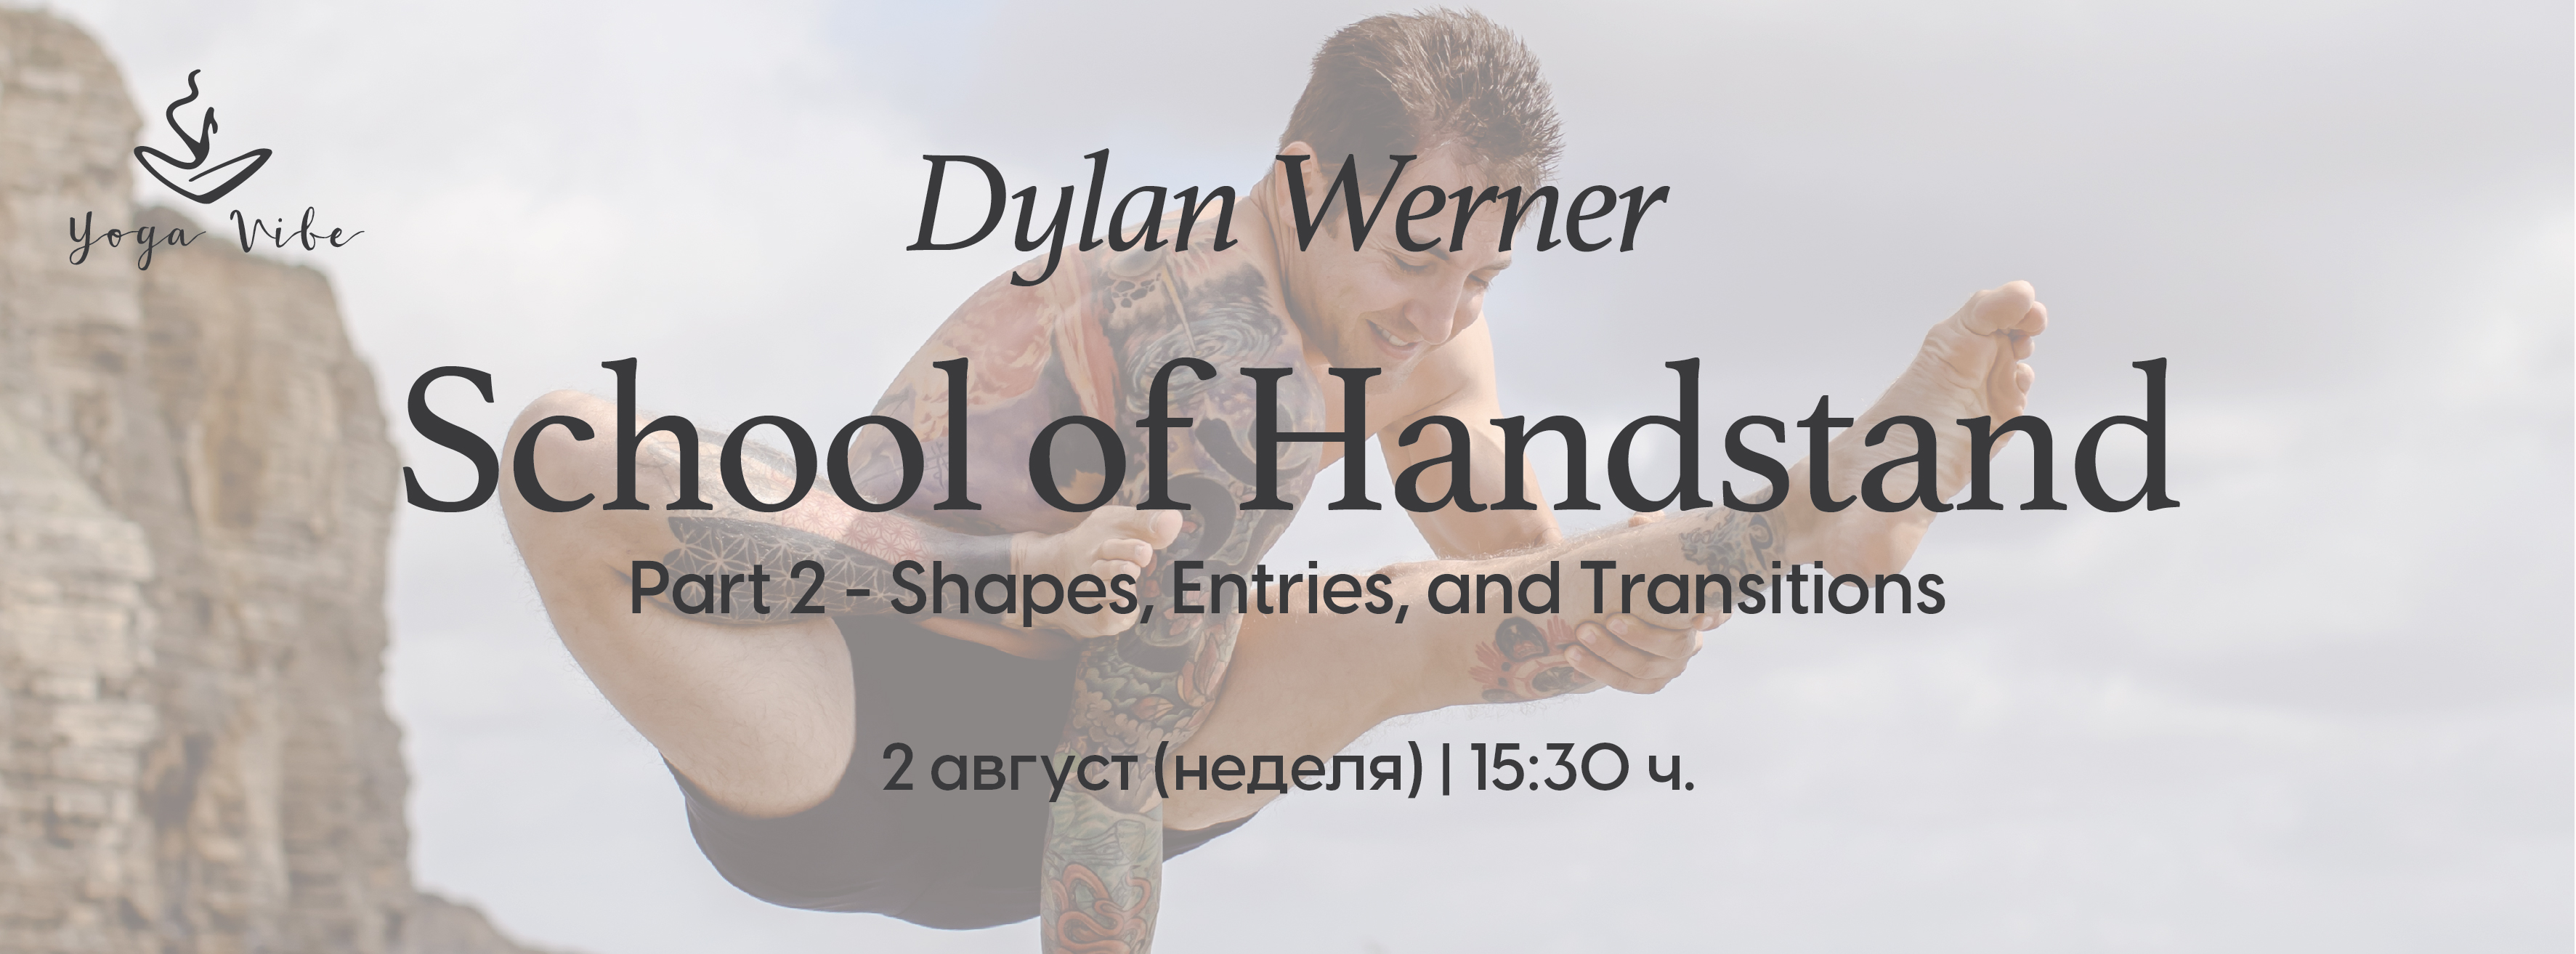 School of Handstand - Part 2 - Shapes, Entries, and Transitions с Dylan Werner